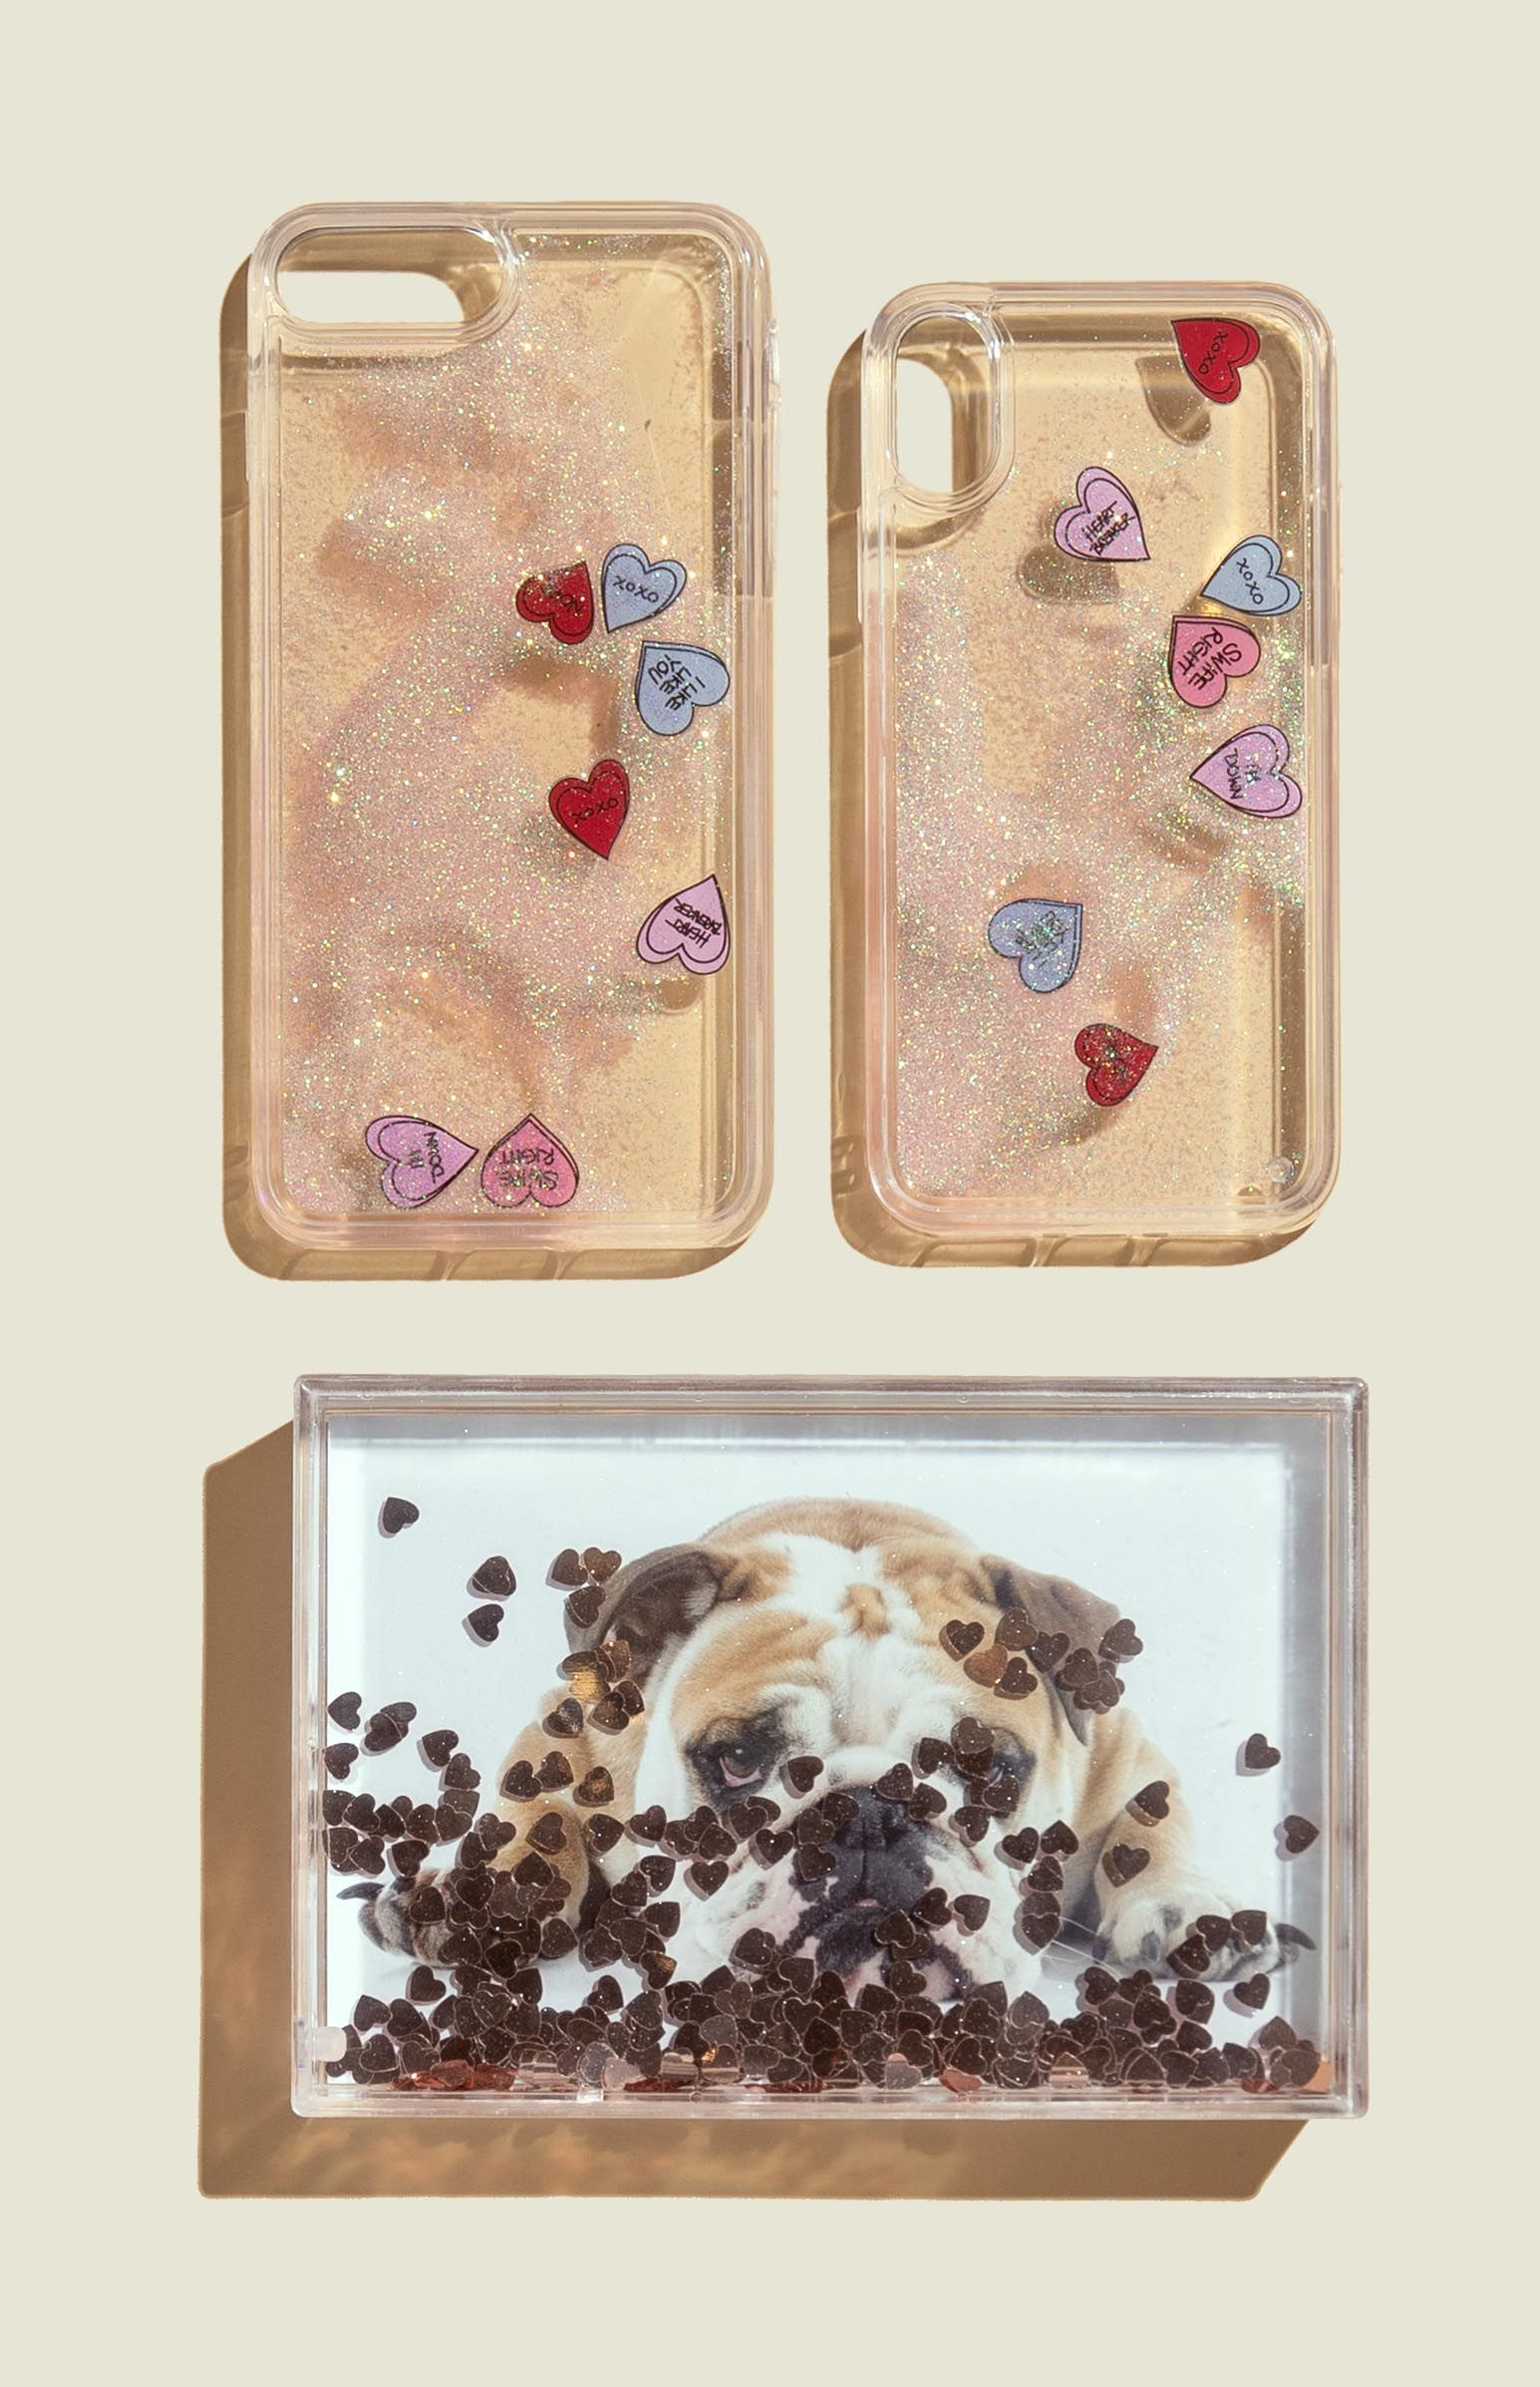 Phone cases with glitter liquid picture frame